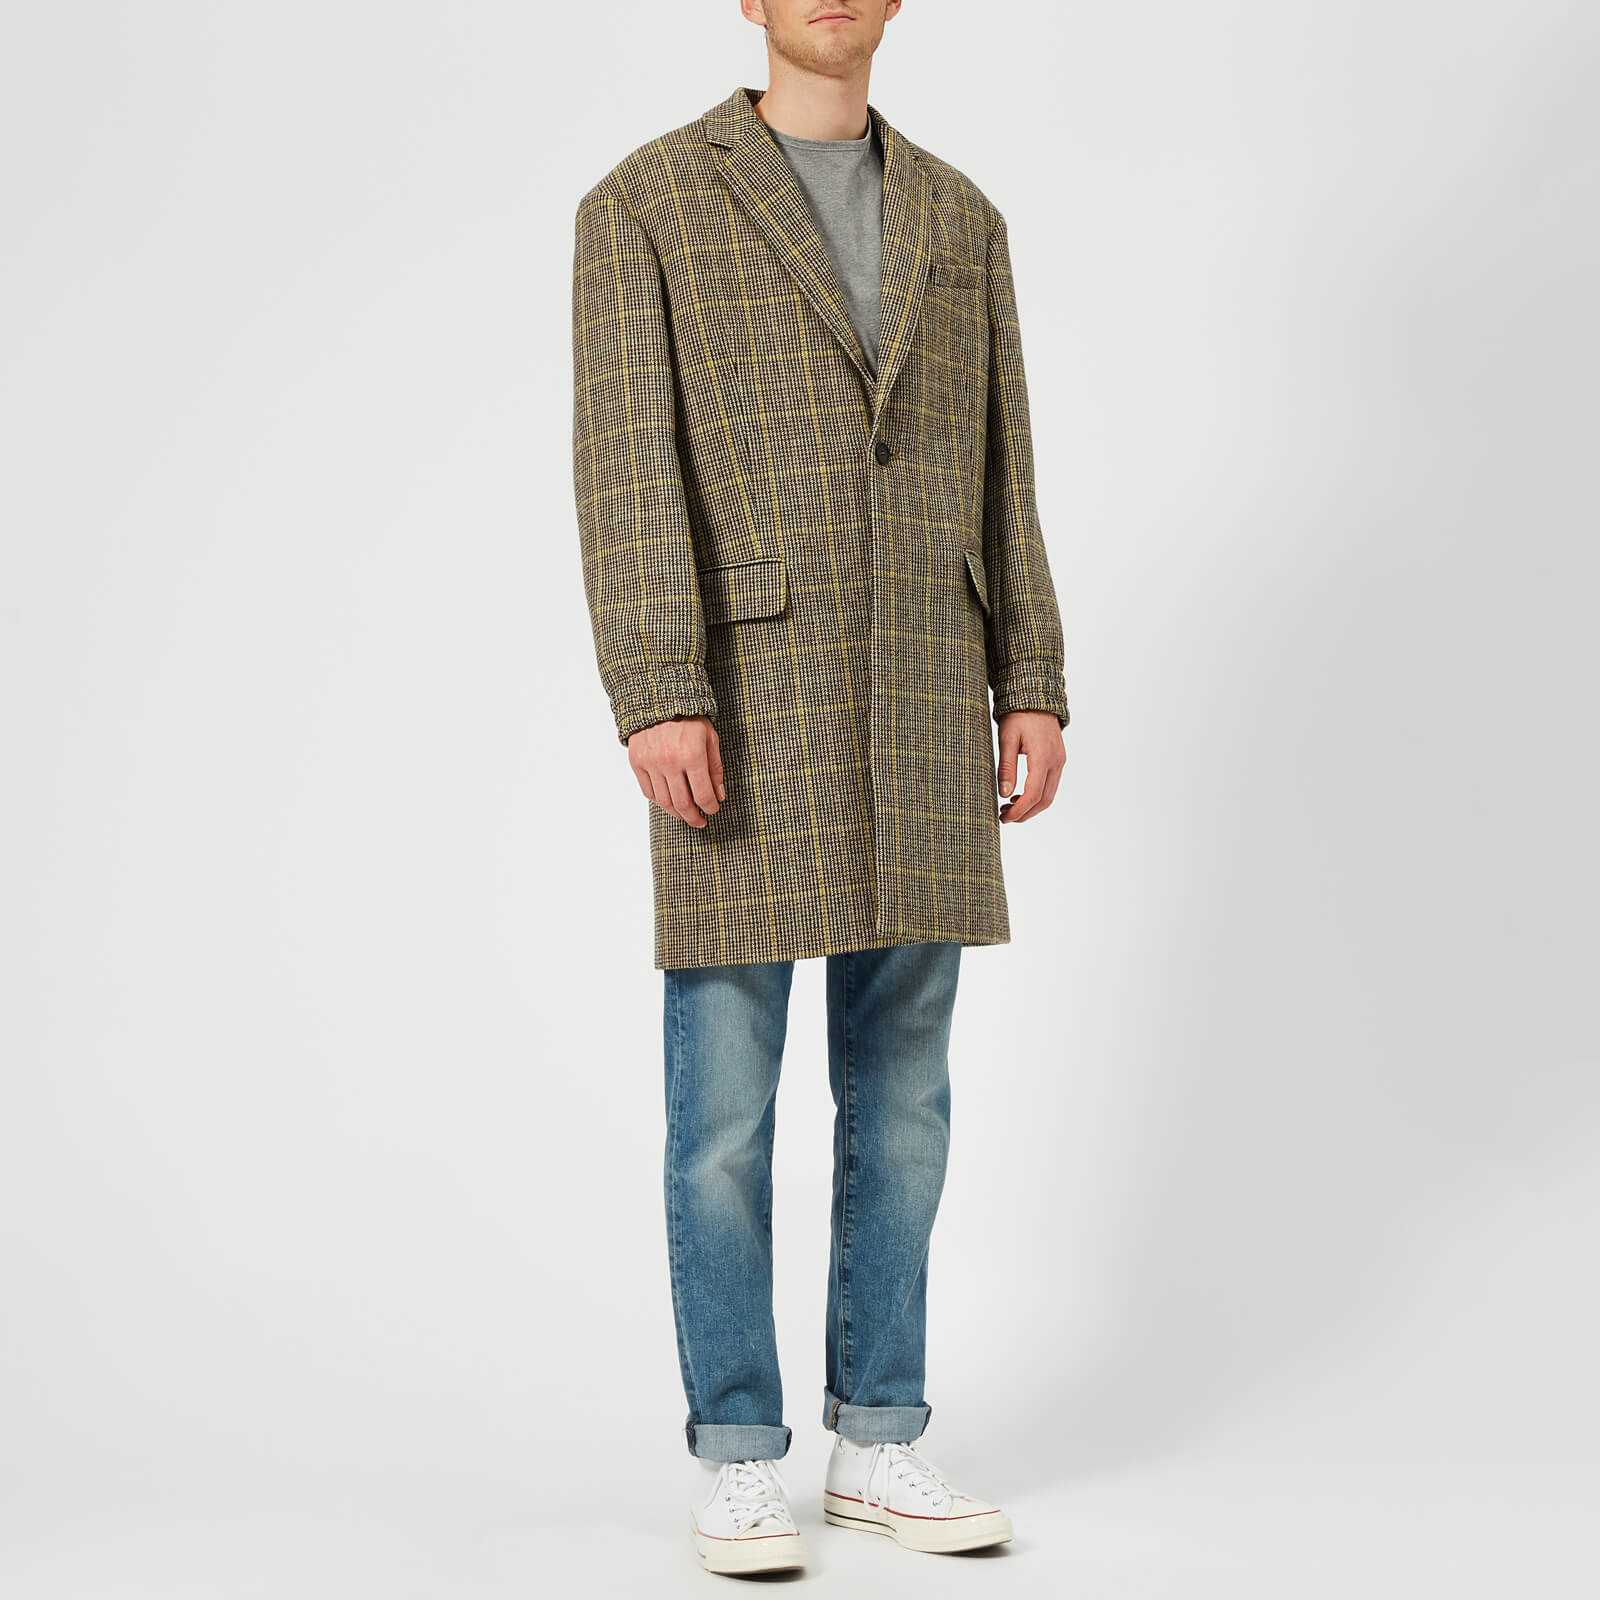 Kenzo Men S One Button Long Coat Pale Camel Free Uk Delivery